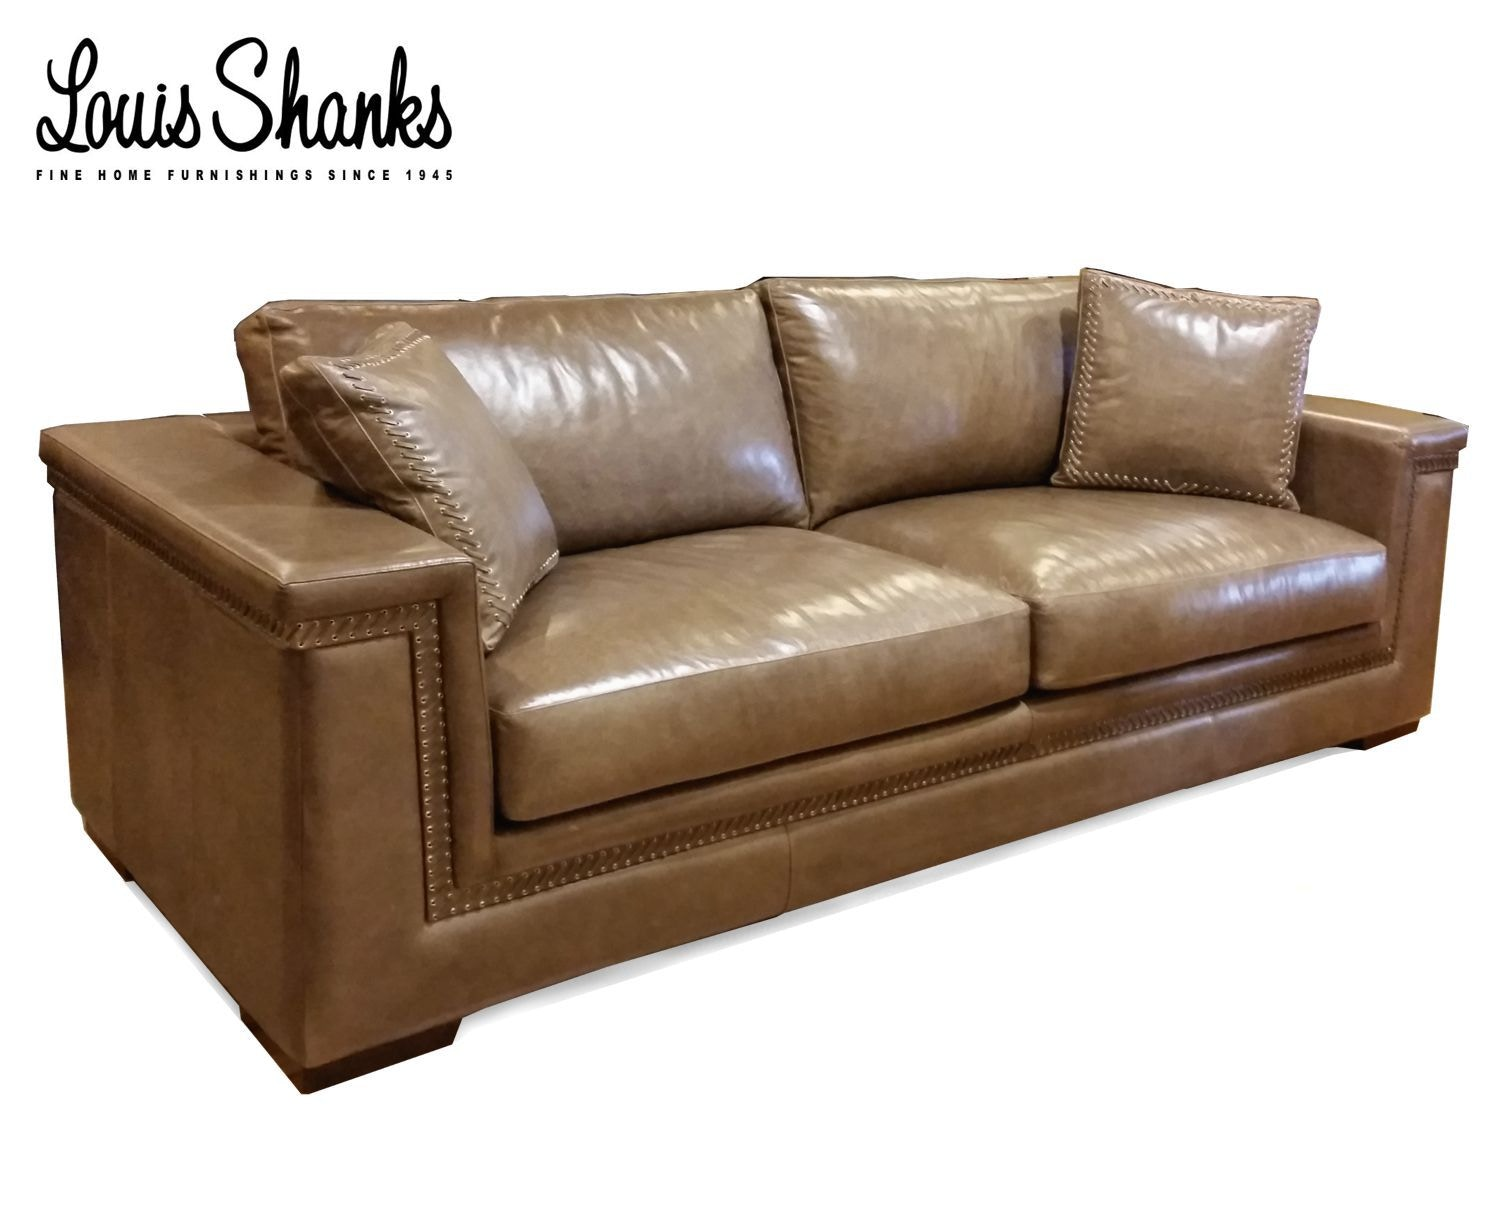 Beau Artistic Leather Leather Sofa With Hand Lacing